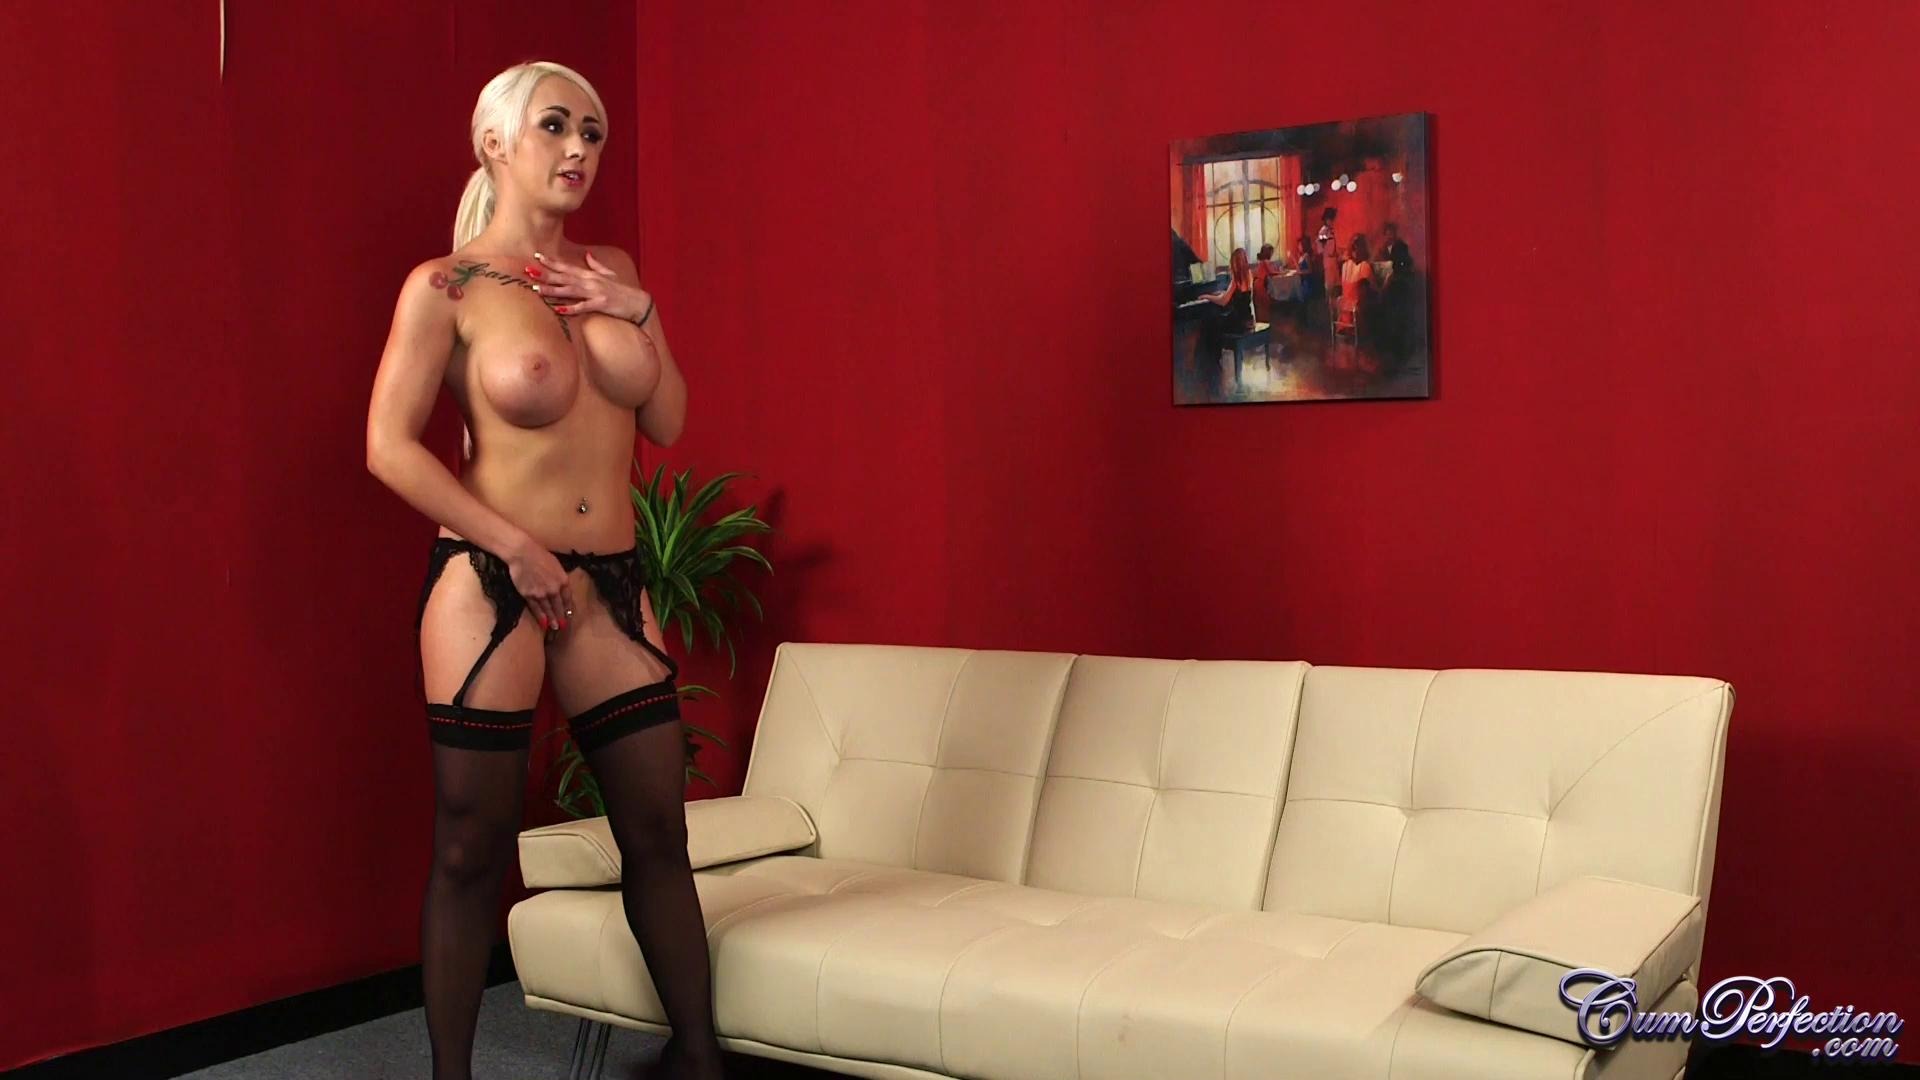 CumPerfection – Christina Shine Desperate For It